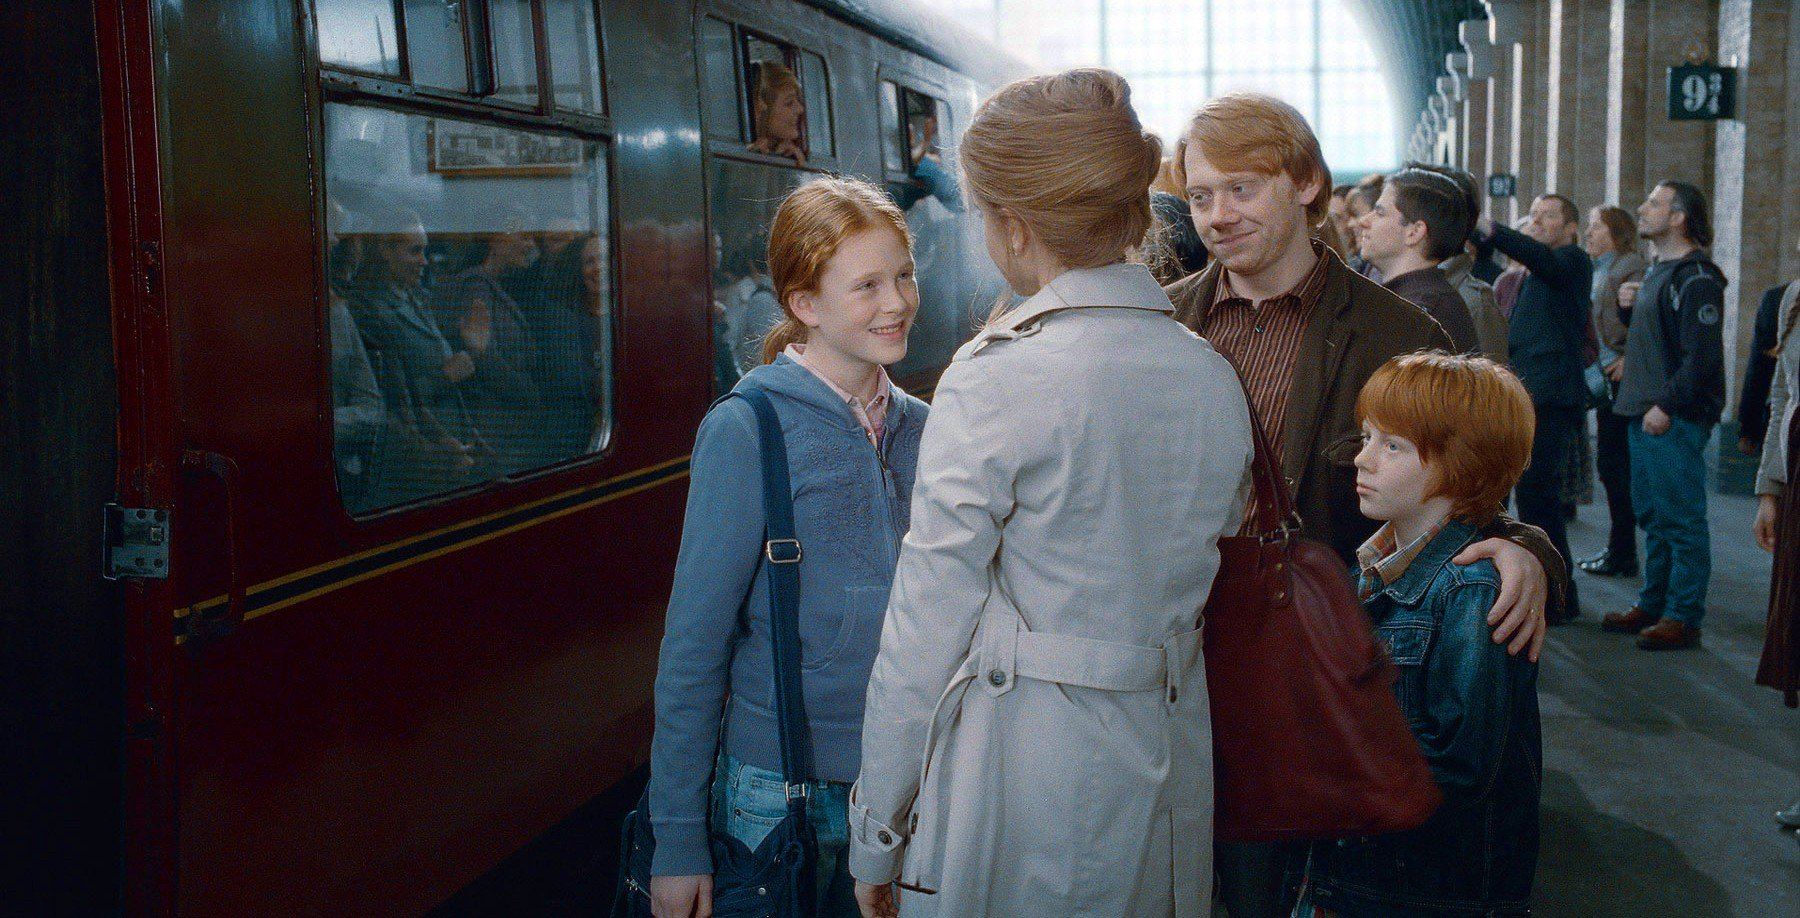 Marry hermione why ron did J.K. Rowling